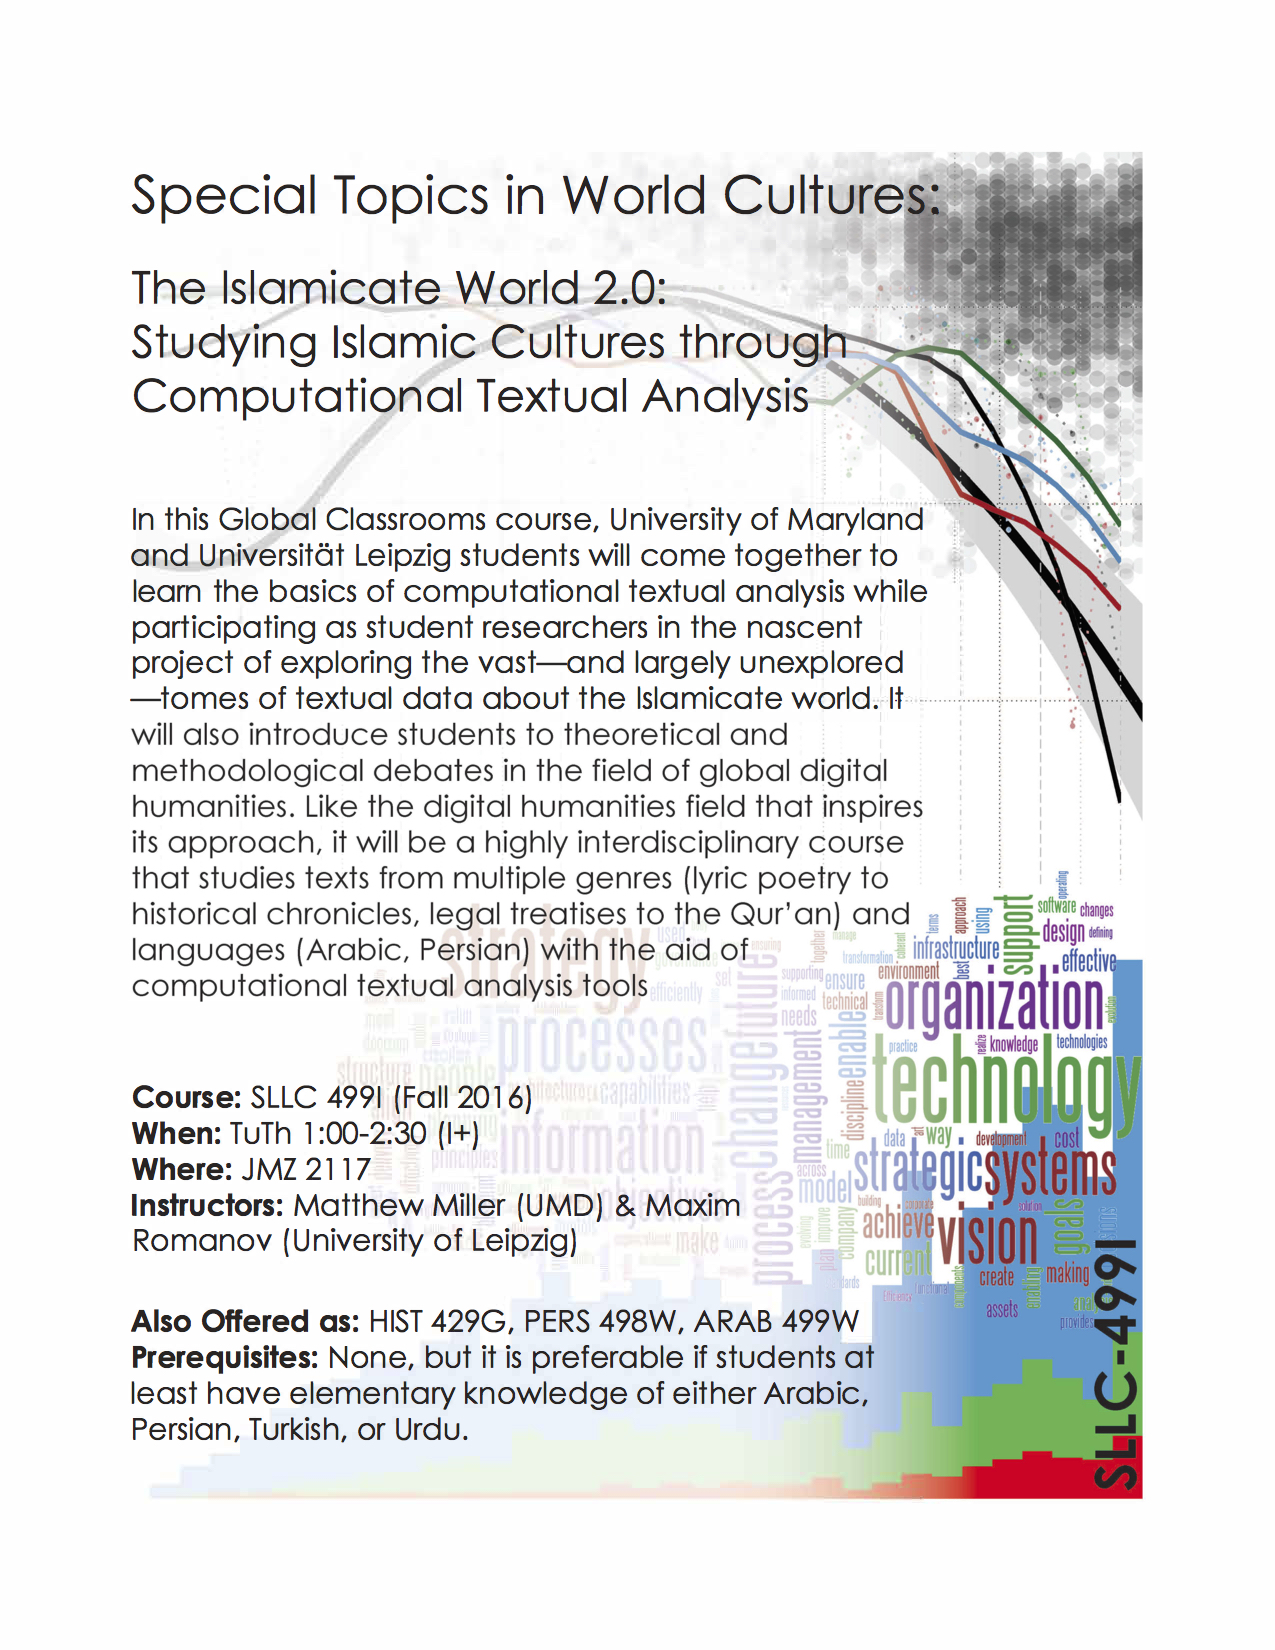 The Islamicate World 2.0: Studying Islamic Cultures through Computational Textual Analysis, taught by Matthew Thomas Miller & Maxim Romanov